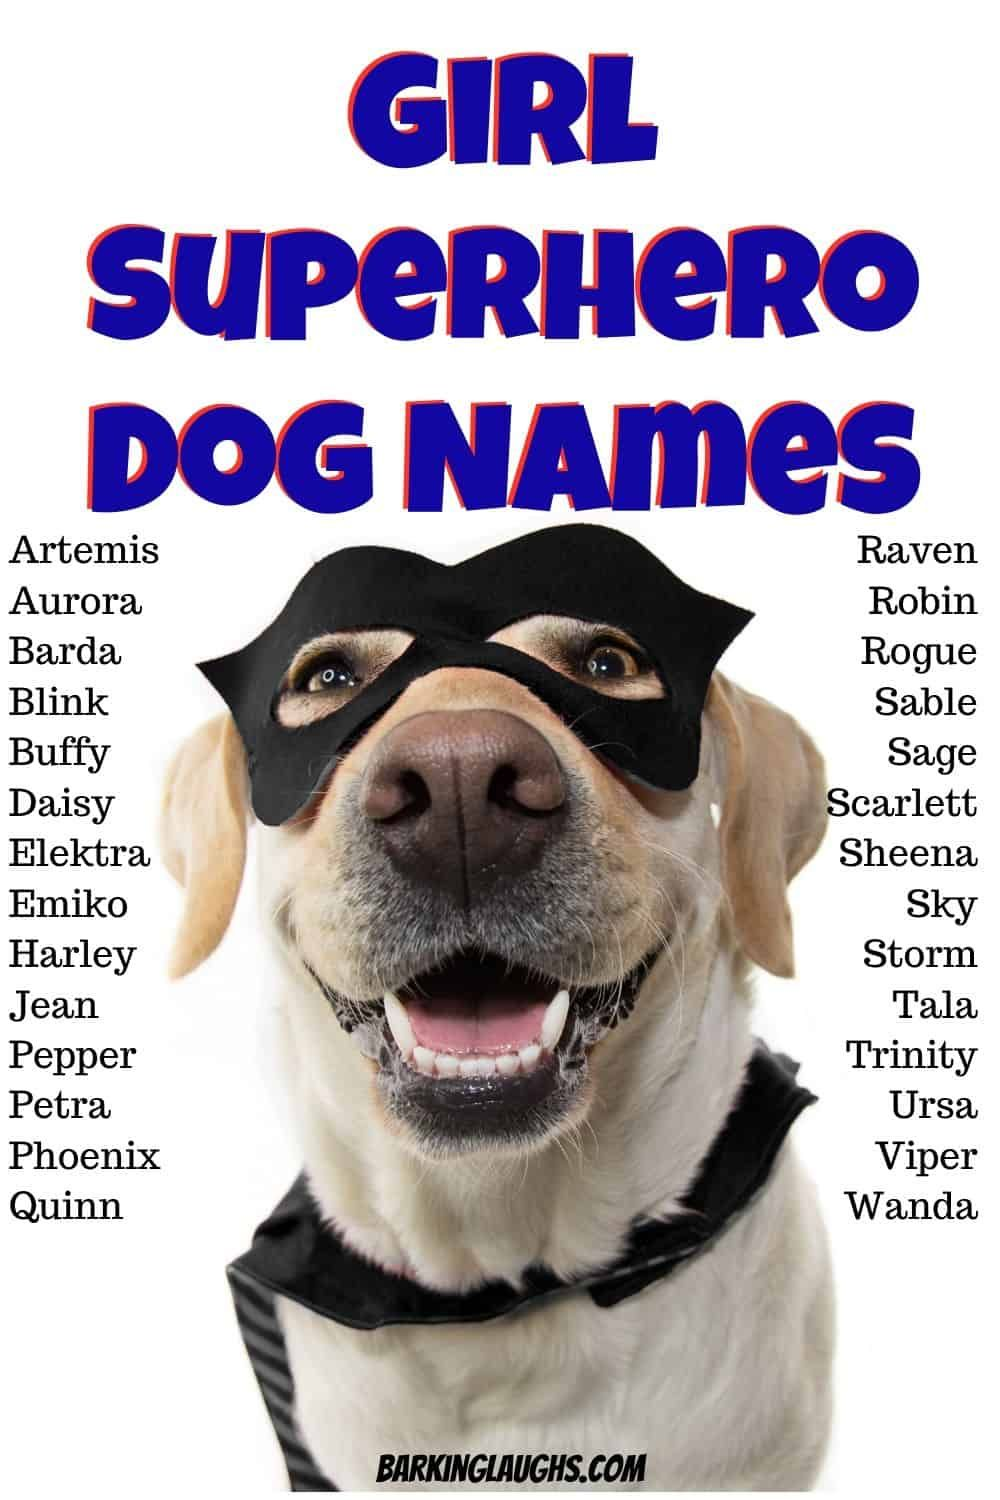 Female Dog Names And Meanings In 2020 Dog Names Female Dog Names Girl Dog Names